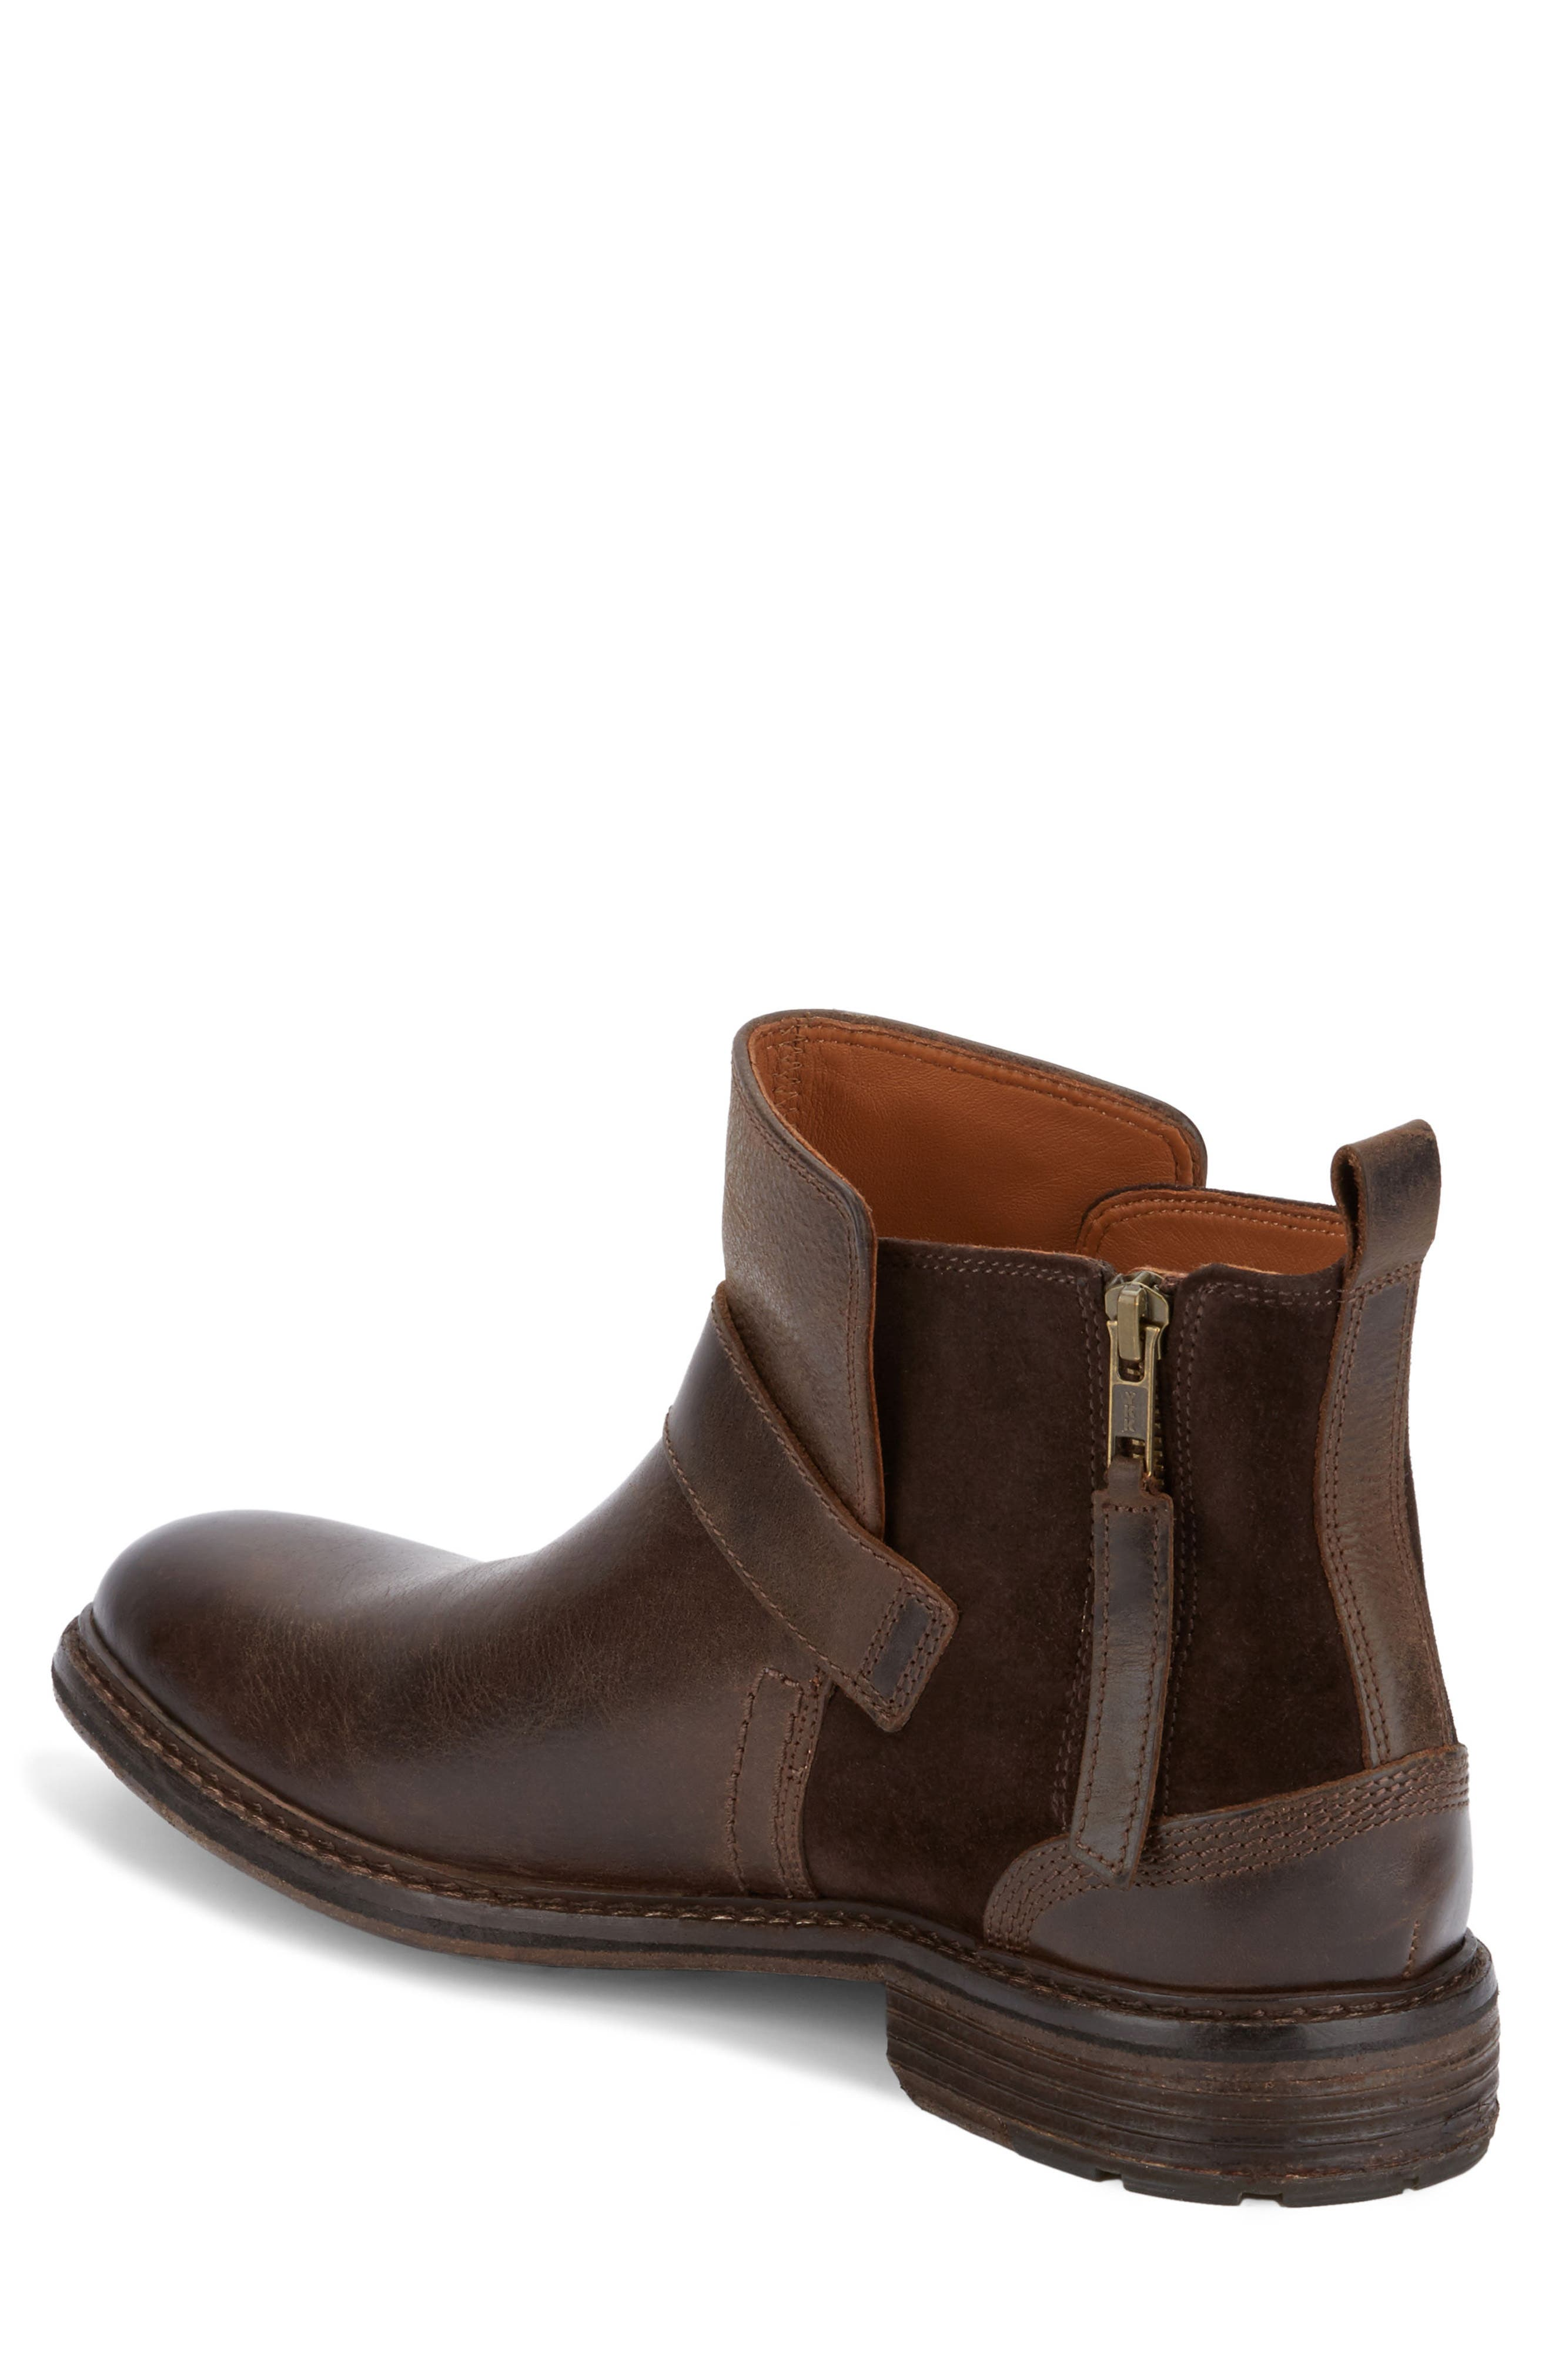 Hawk Buckle Boot,                             Alternate thumbnail 2, color,                             201